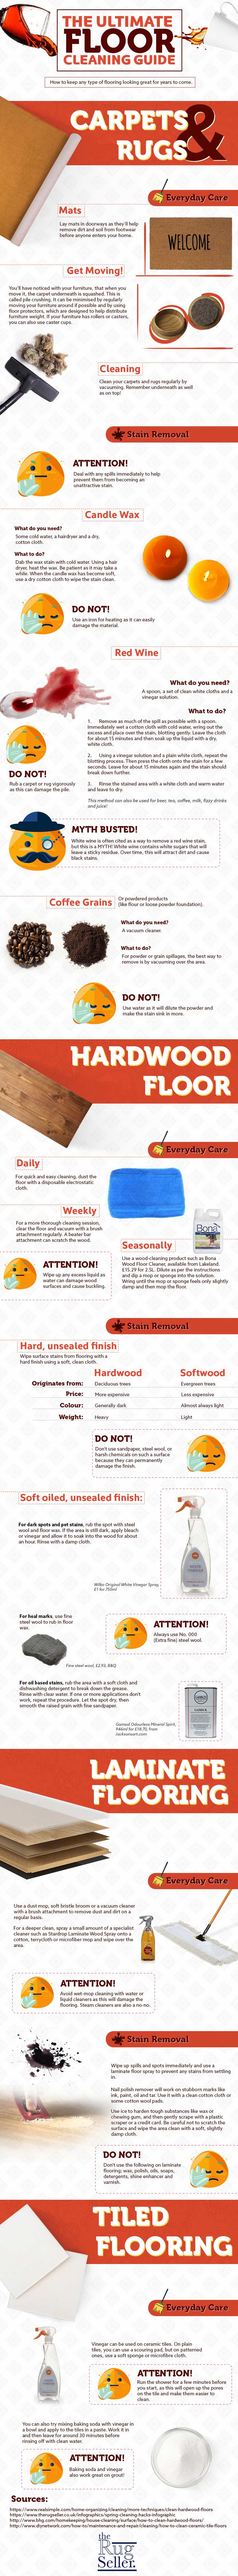 Floor cleaning guide